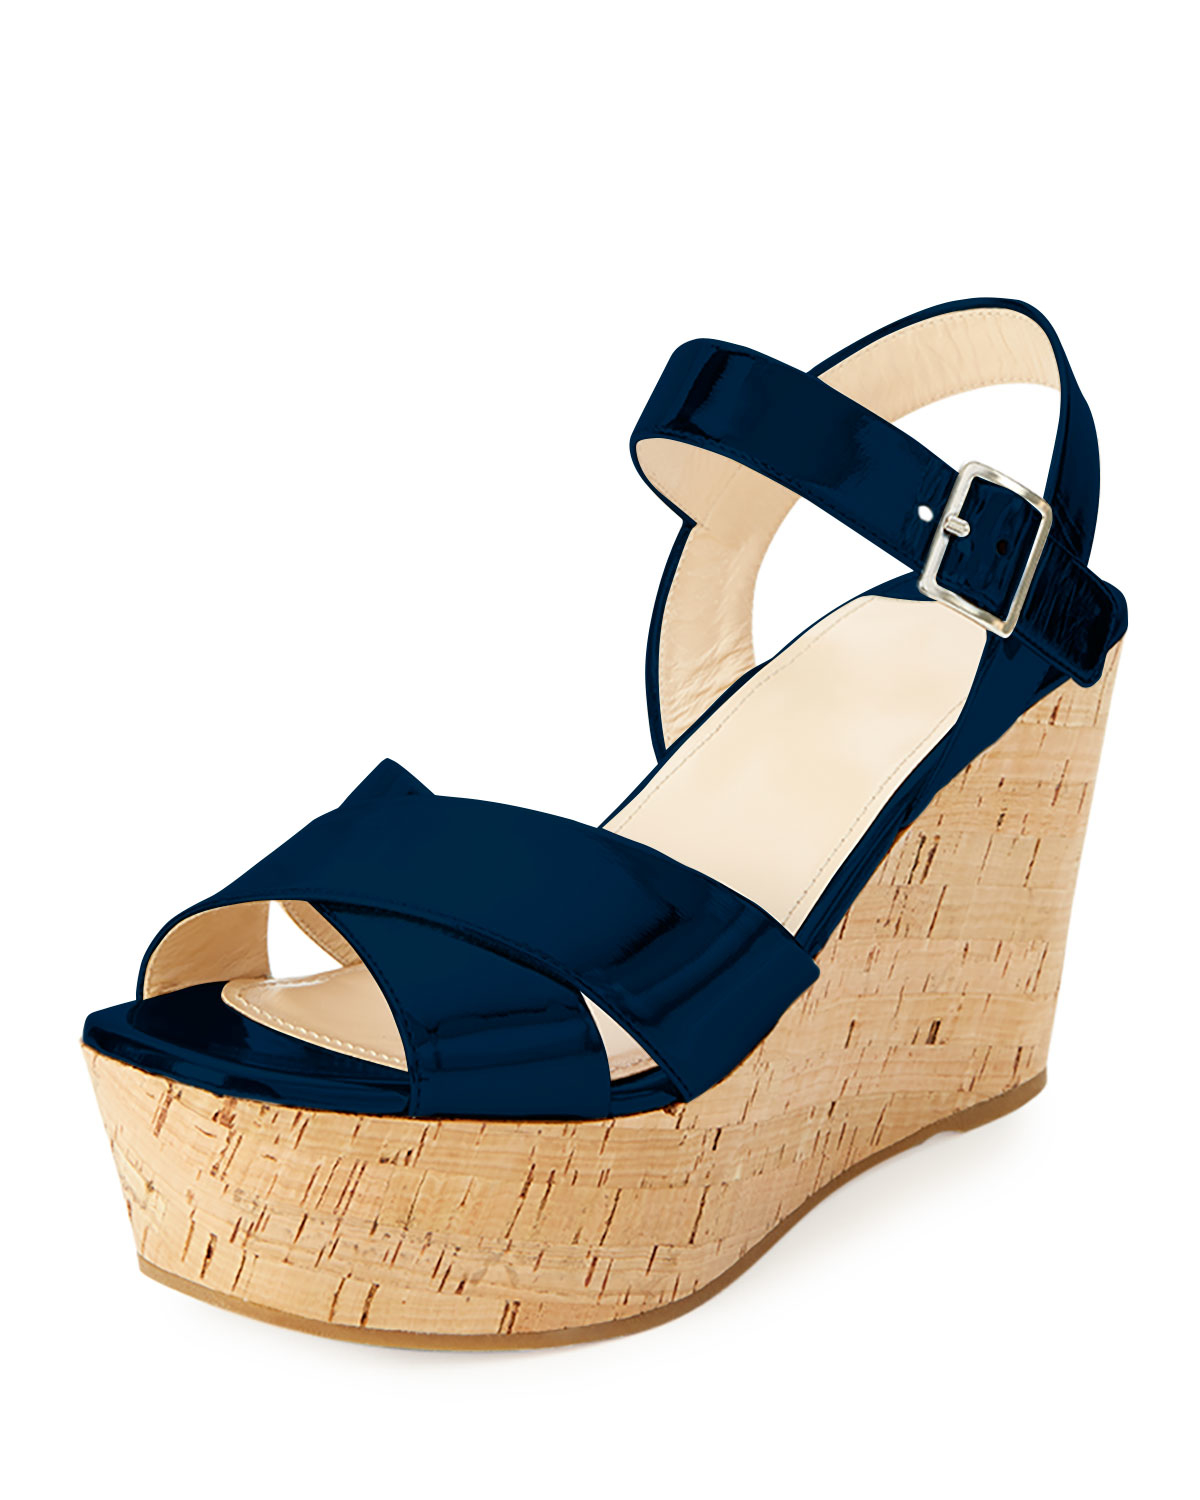 31cc89e2c964 Lyst - Prada Patent Leather Cork Wedge Sandal in Blue